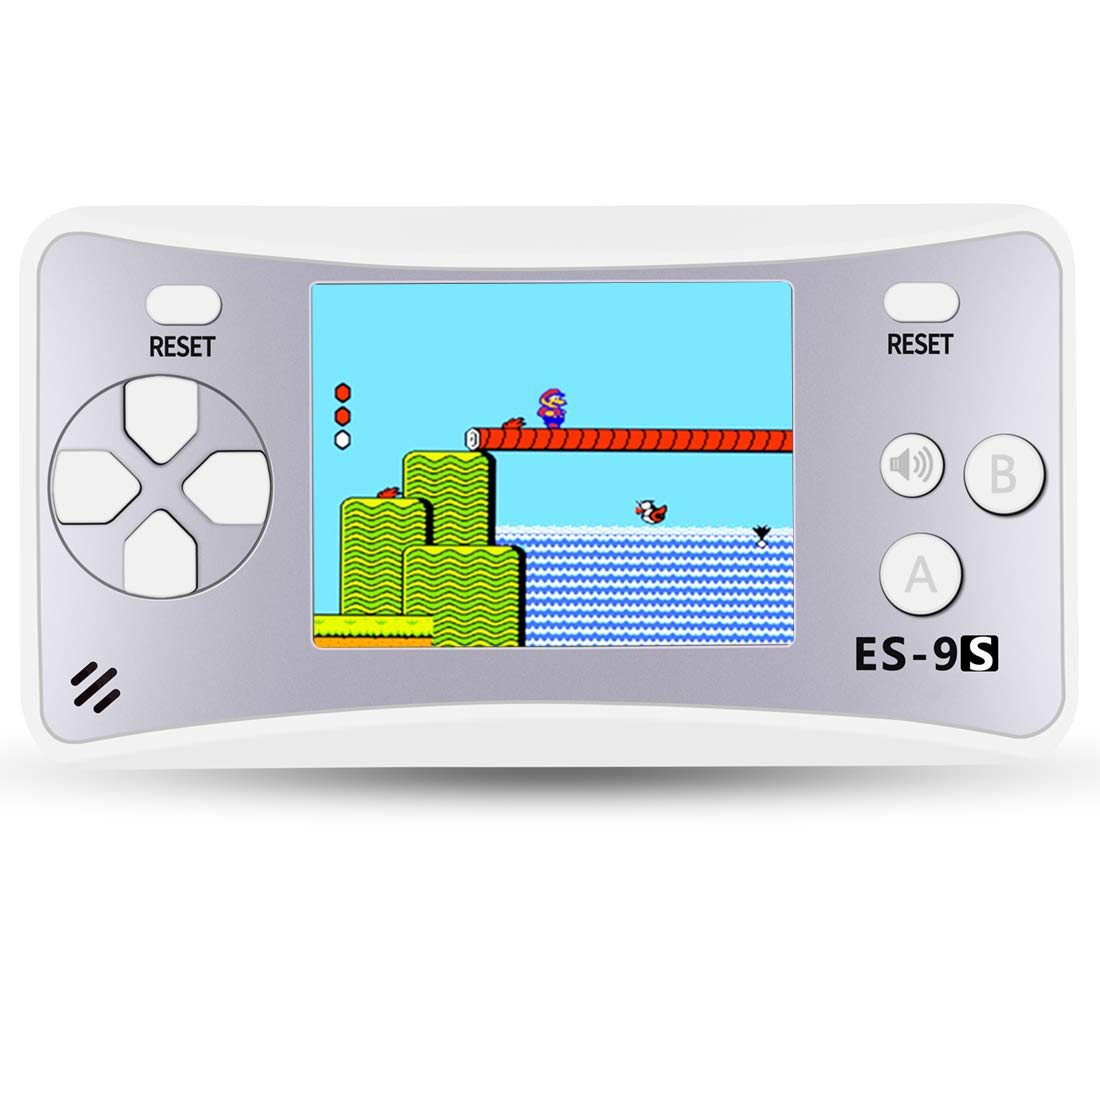 ZHISHAN Handheld Game Console for Children Built in 168 Classic Old Games Retro Arcade Gaming Player Portable Playstation Boy Birthday or Xmas Gift (Silver)